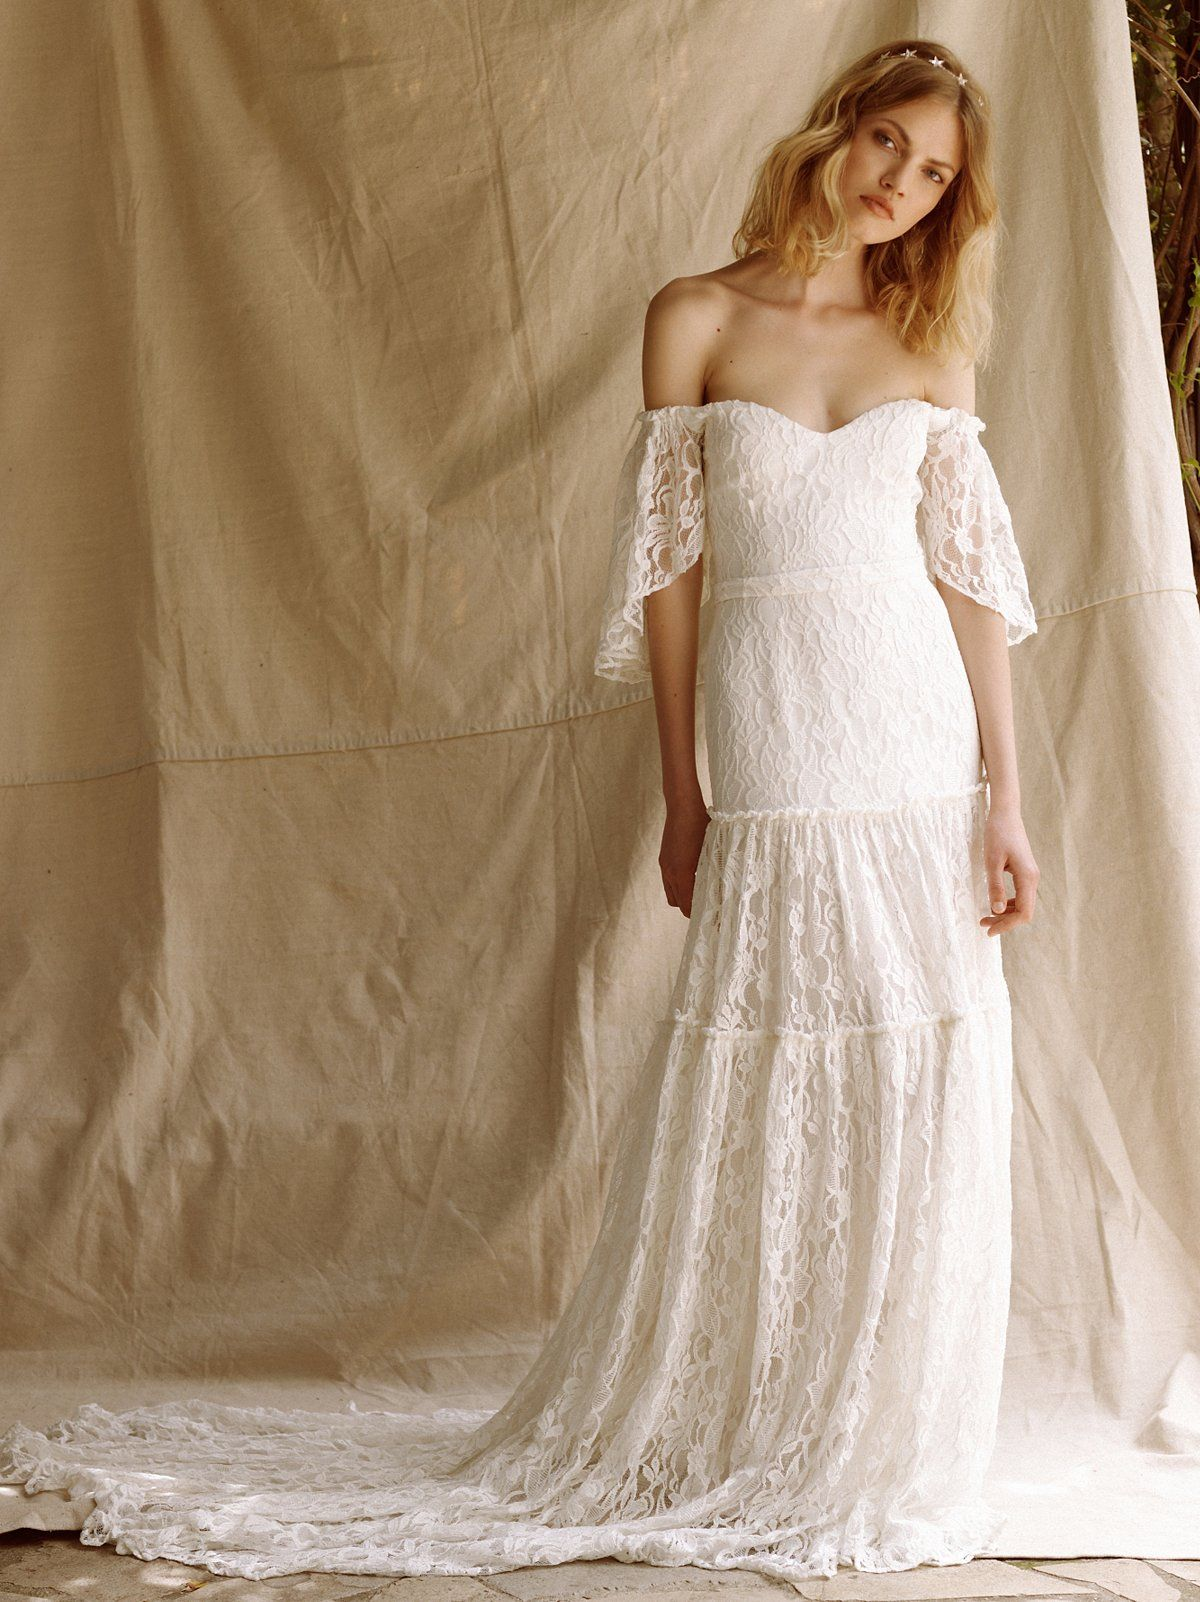 The Monrose Gown Lace Wedding Dress With Sleeves Free People